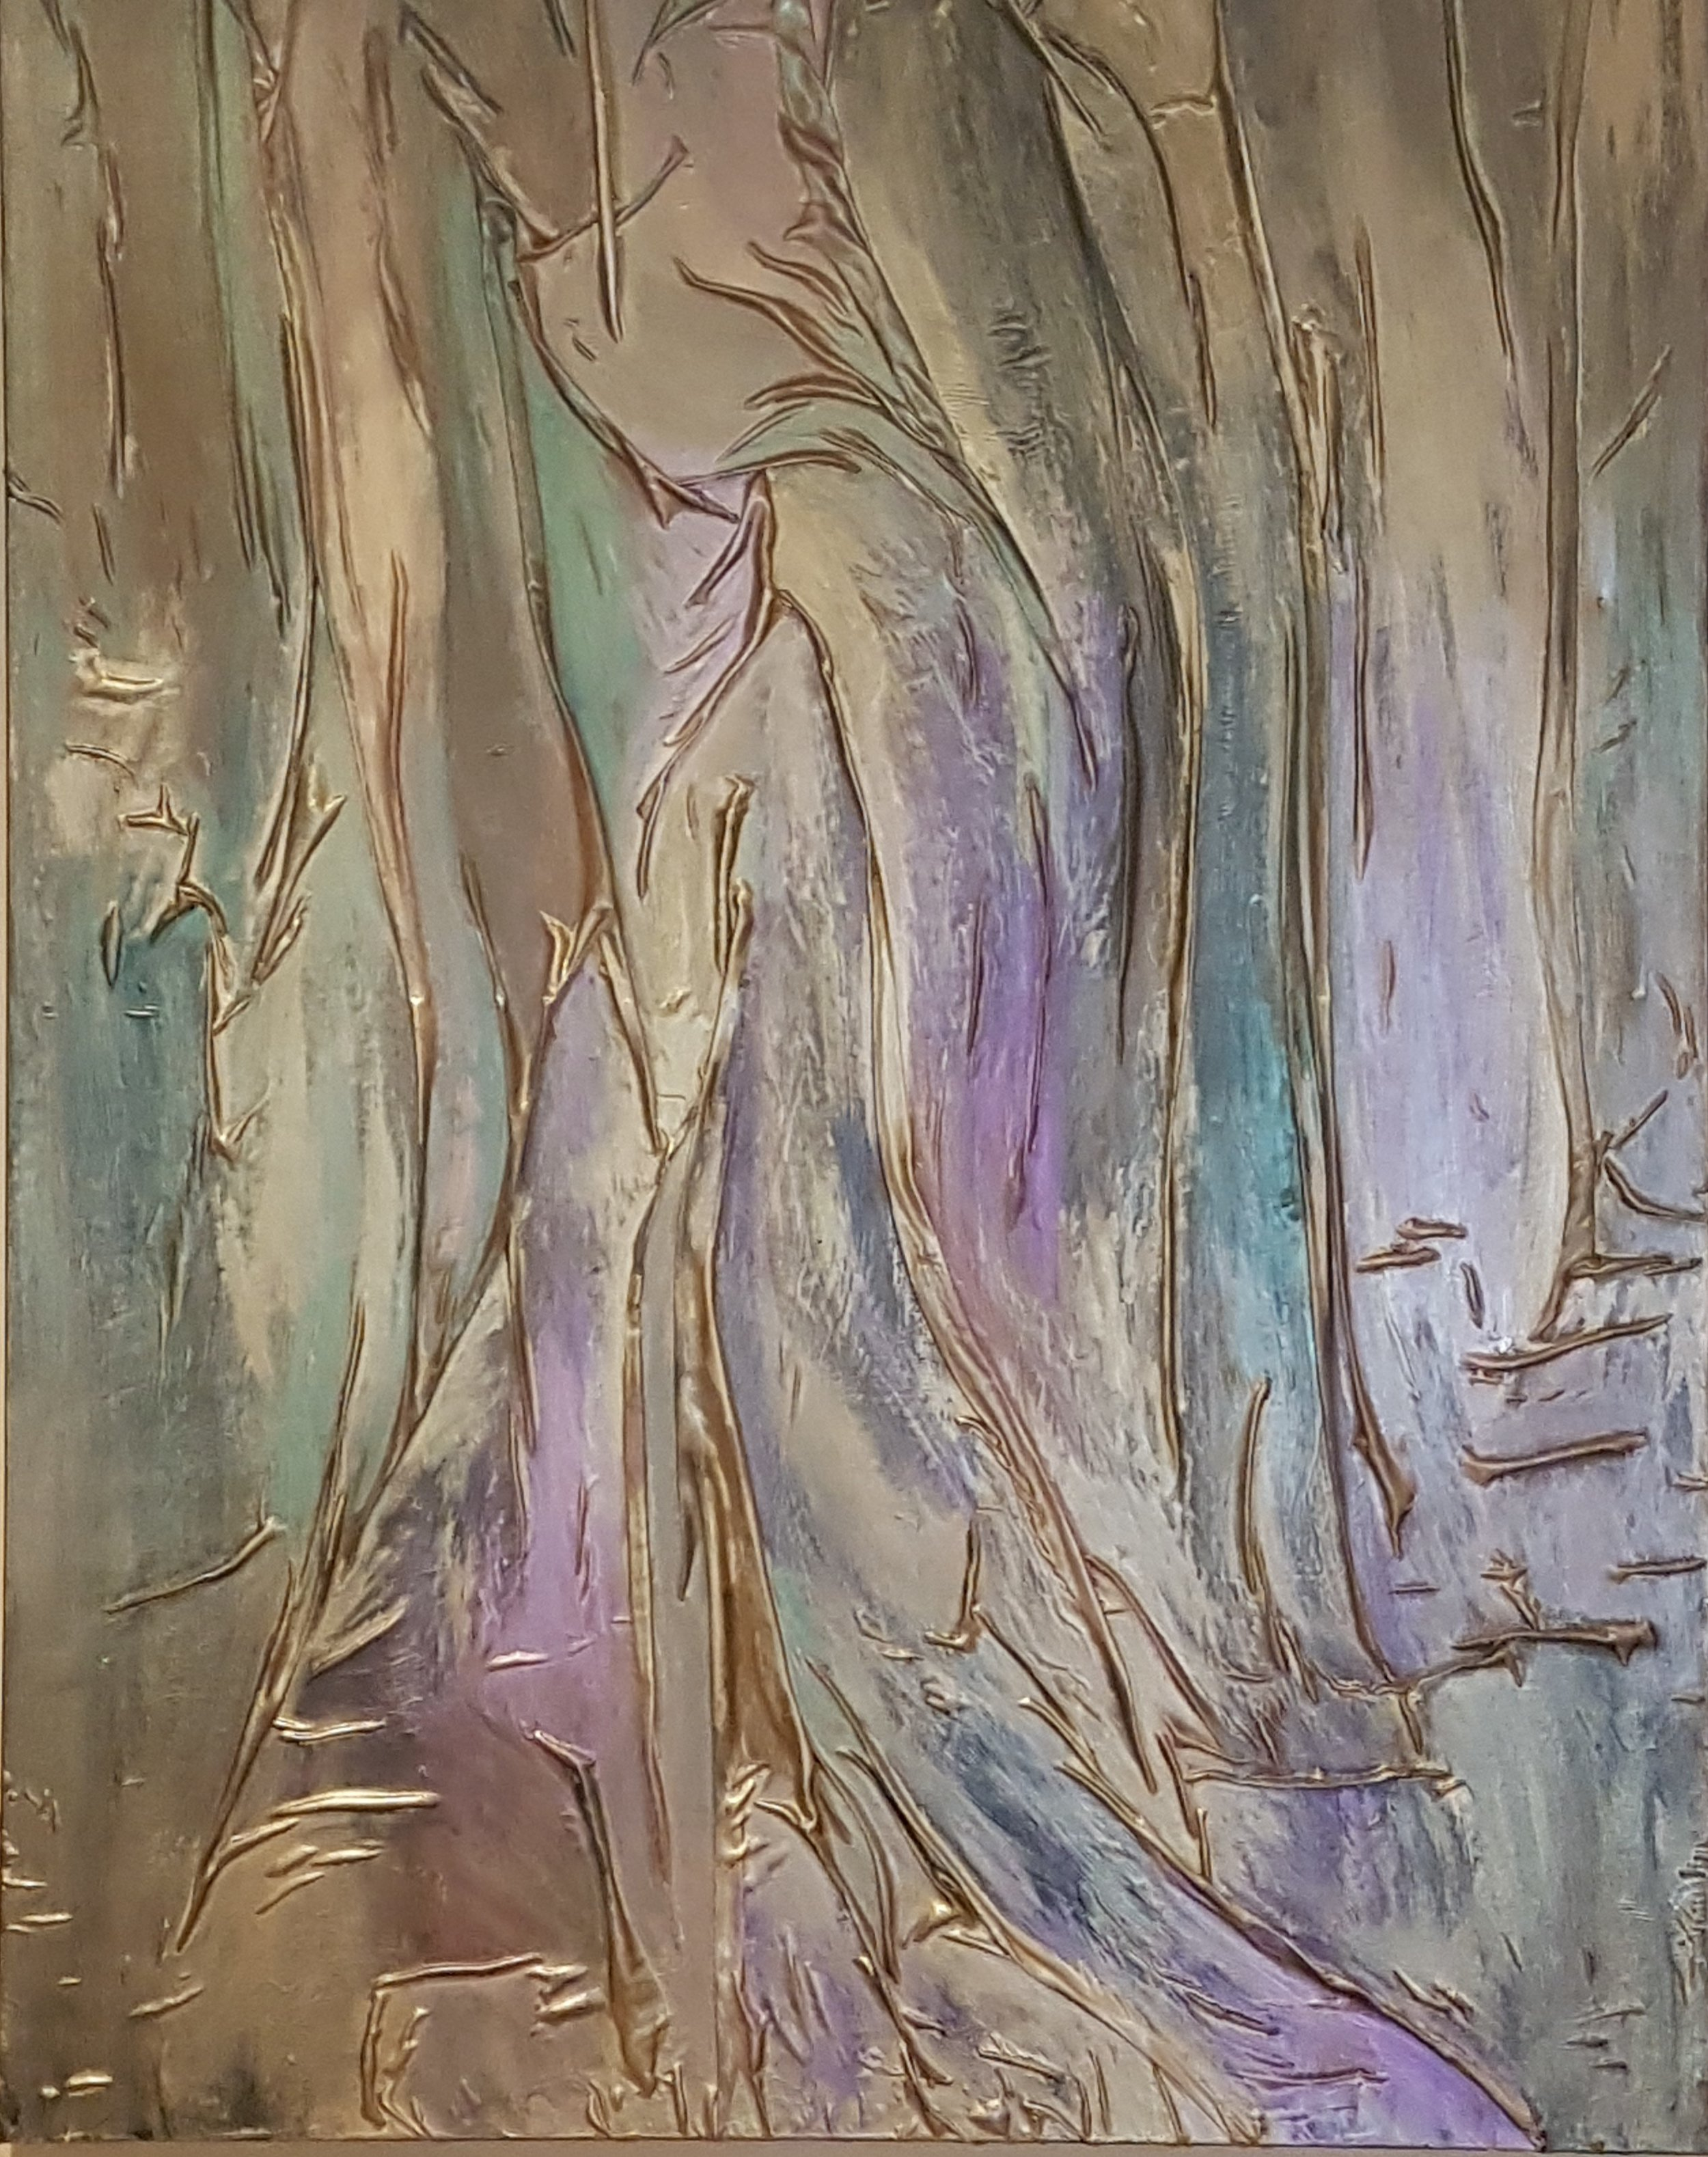 lynn wilson - Silk Cloaked Lady Purple Emereld Gold .jpg